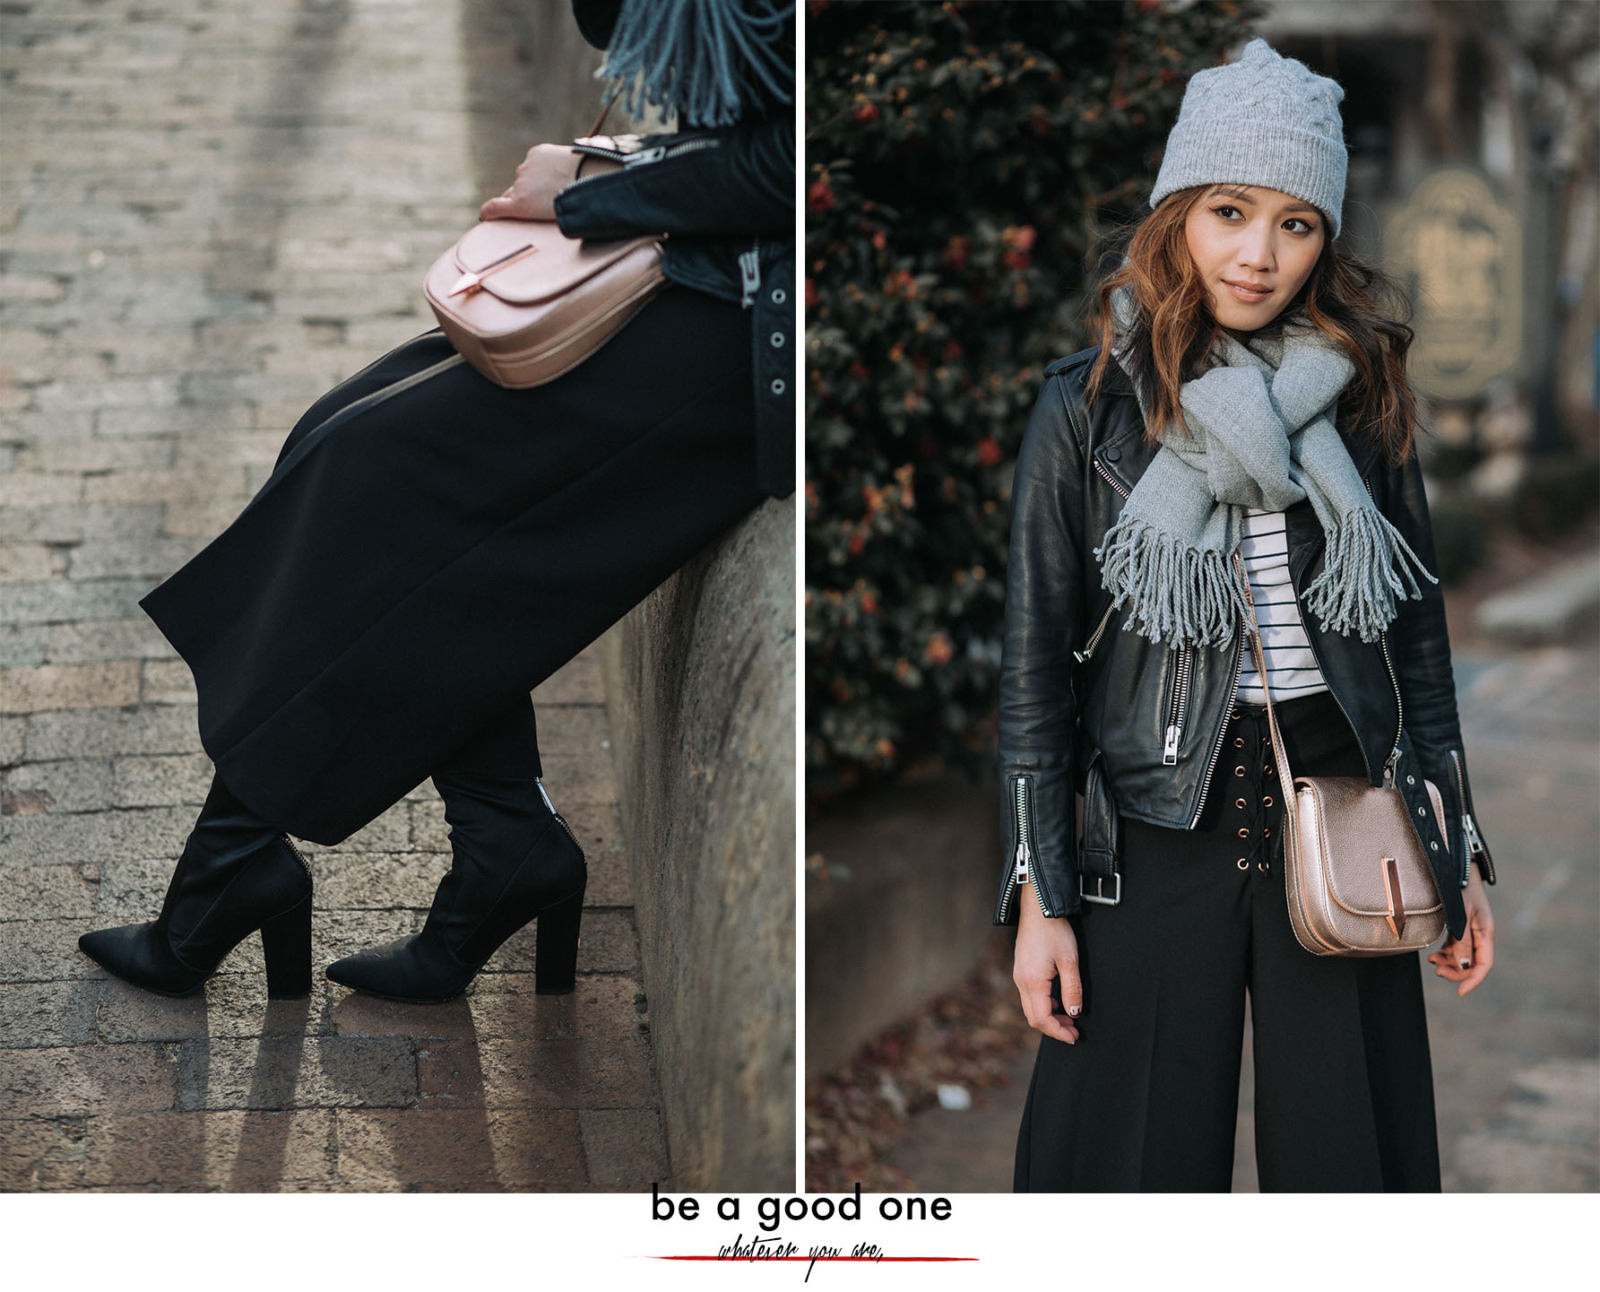 Blogging Essentials: How to Nail Your Personal Brand | LE-JOLIE.COM | winter outfits, layered winter look, street style fashion, winter street style, fashion blogger street style, charlotte fashion blogger, all saints balfern leather jacket, rosegold bag, blogging tips, blogging advice, sock booties, detail shot, sock boots trend